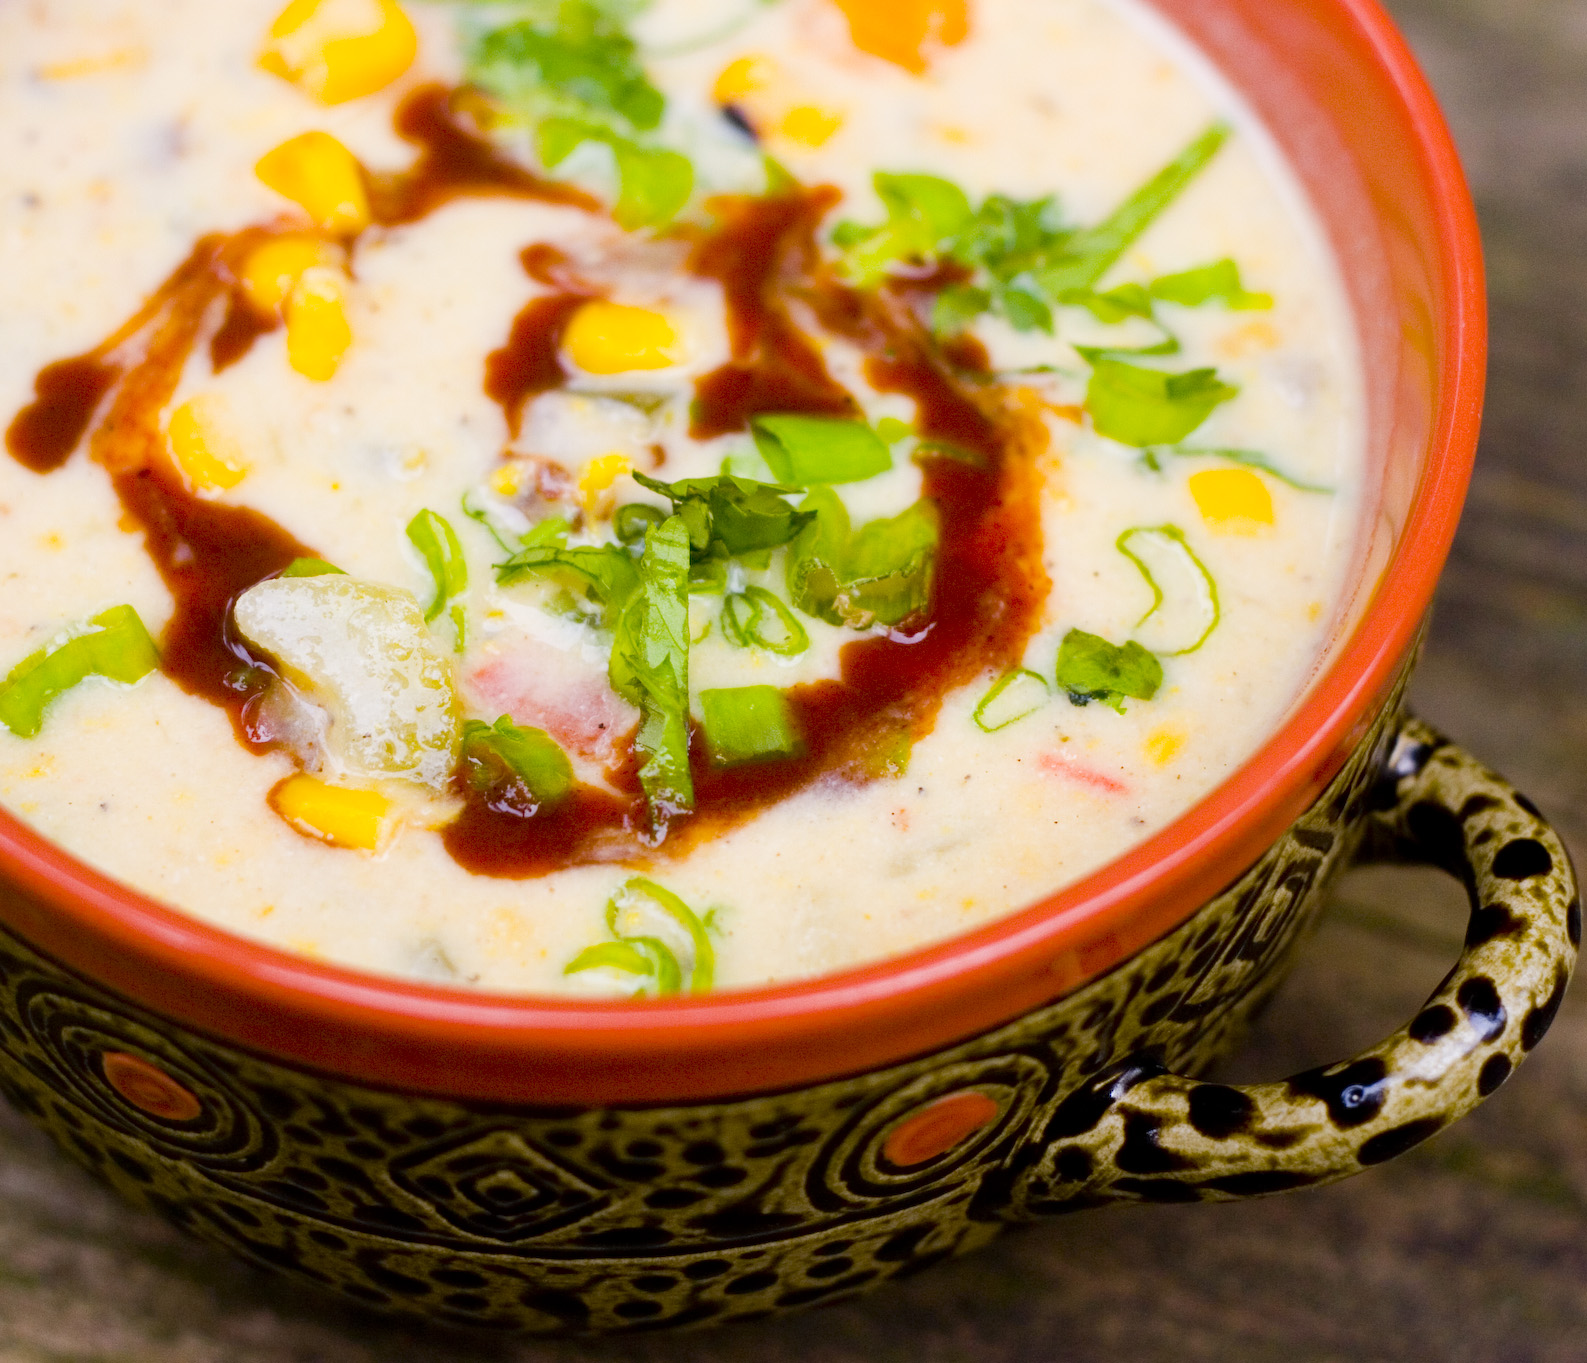 No Face Plate: Out of Hand Sick Delicious Corn Chowder